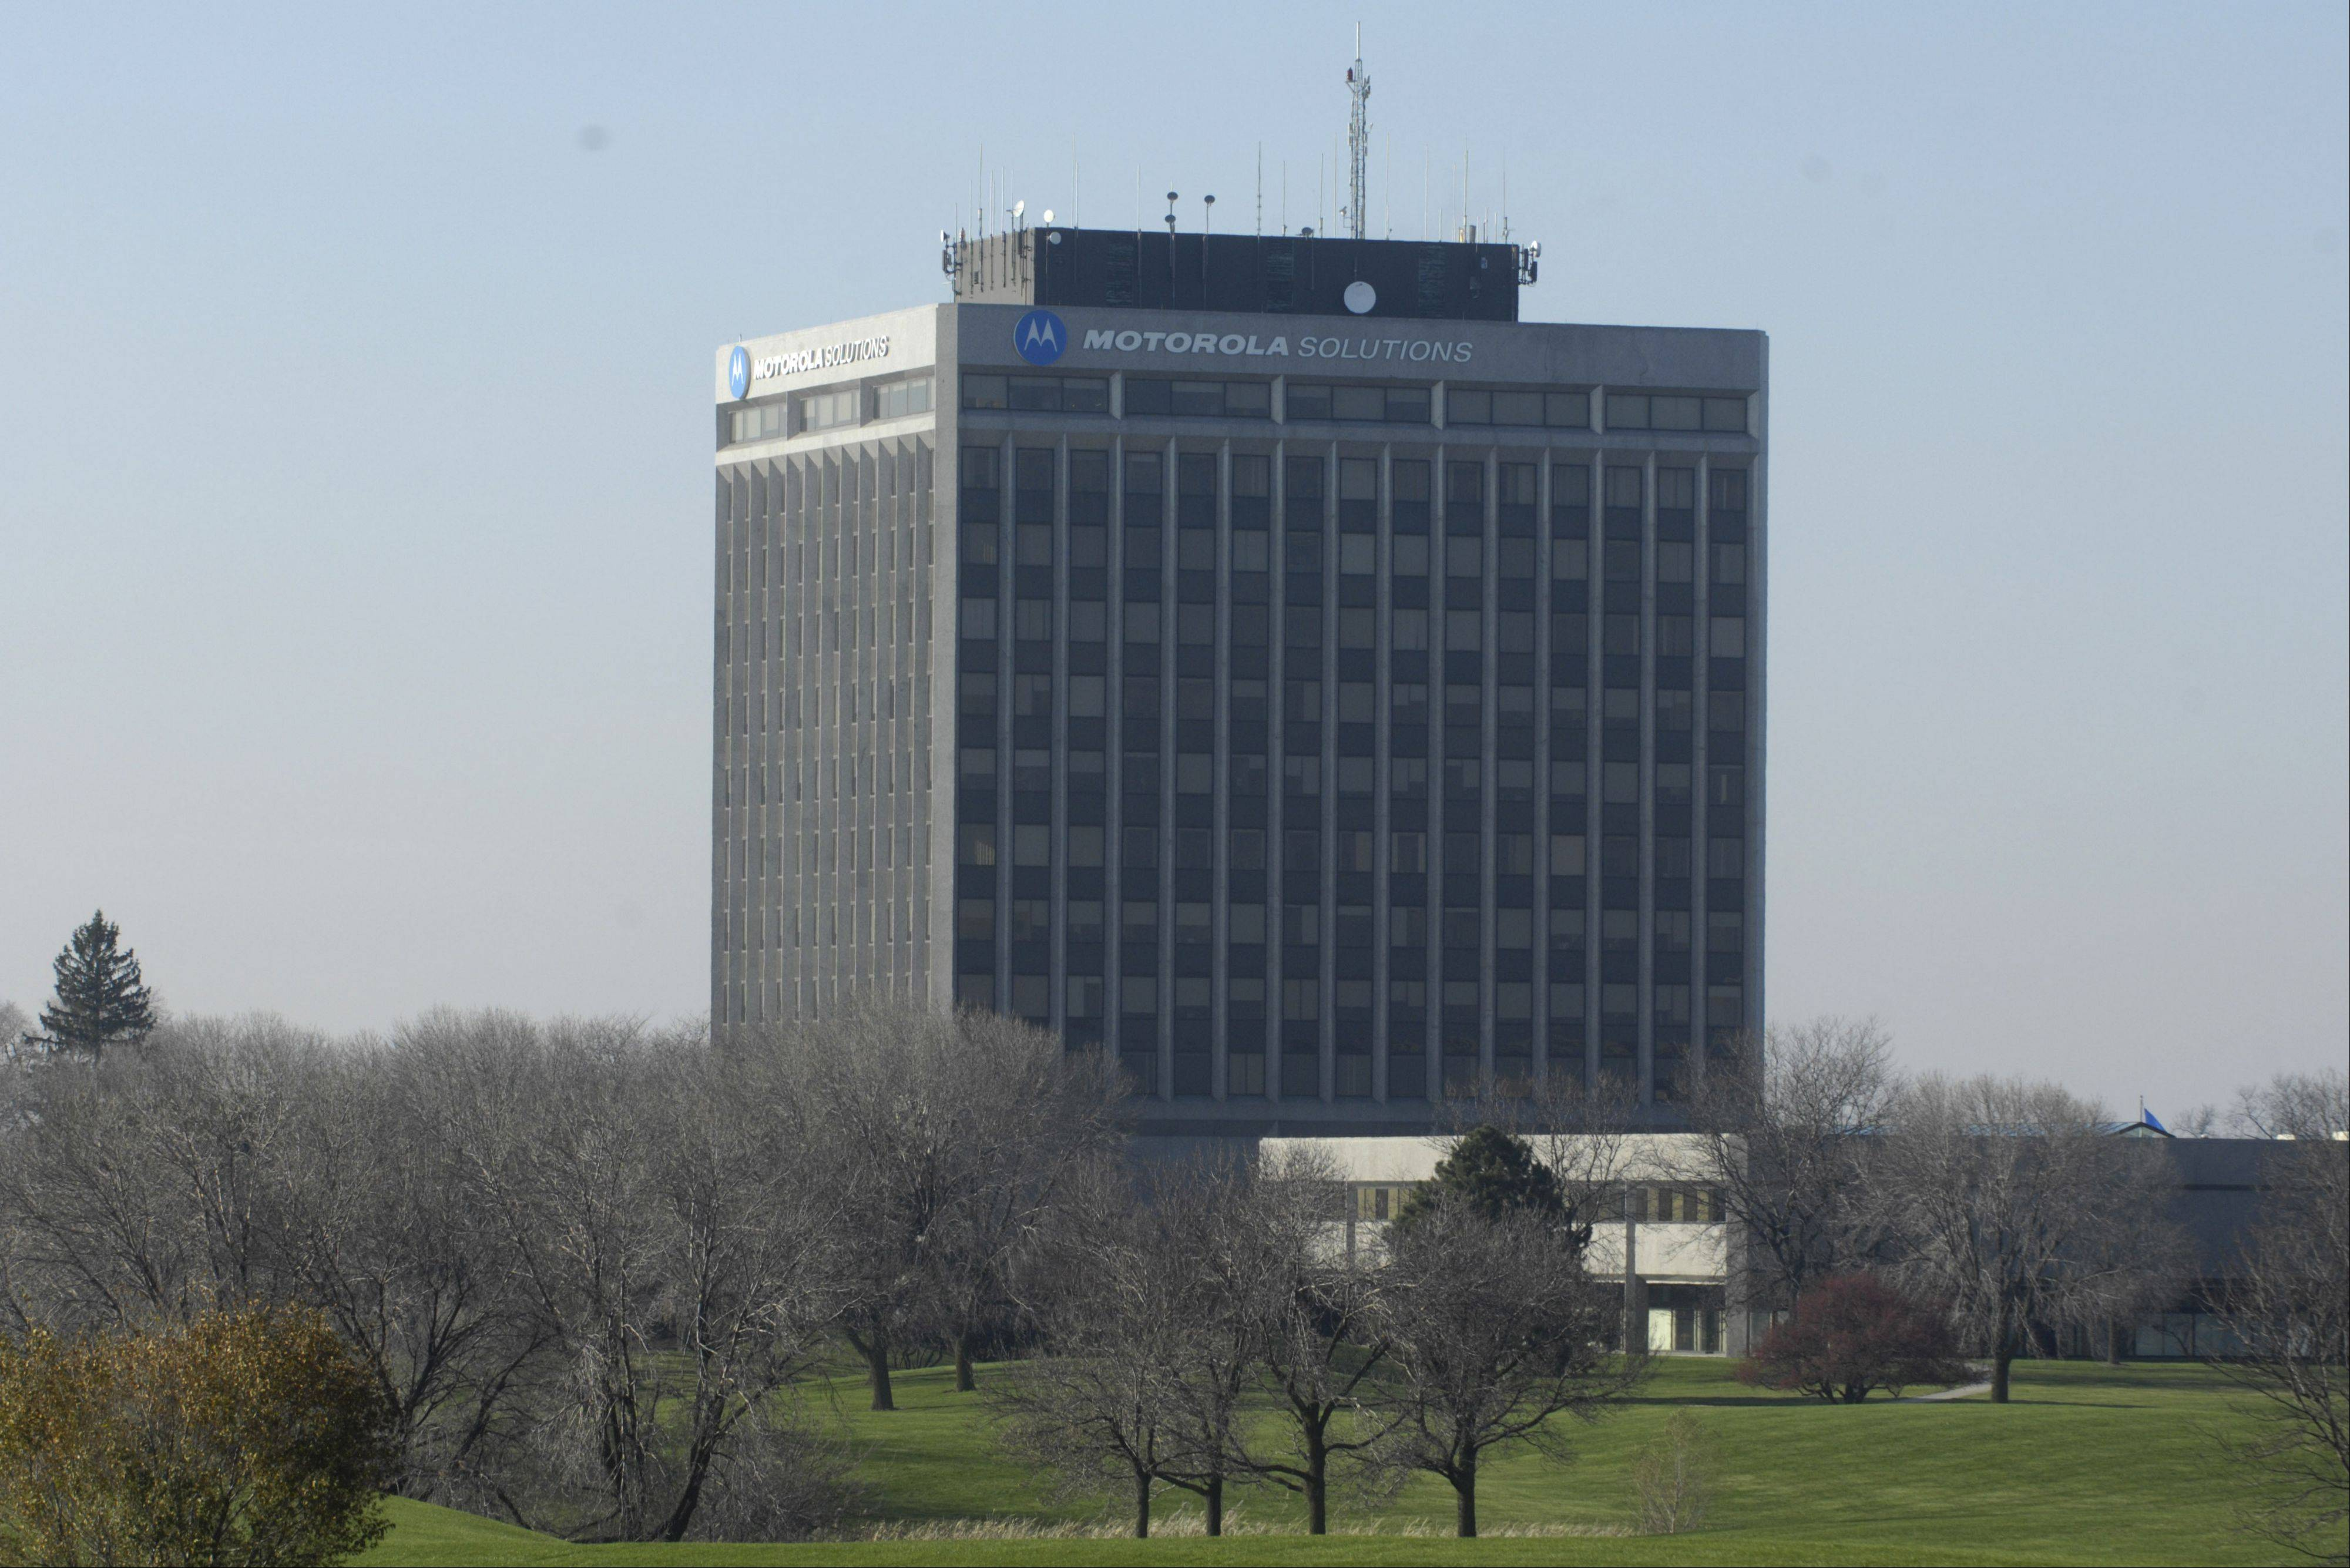 Motorola Solutions in Schaumburg has been named to the Global 100 list of the world's most sustainable corporations.